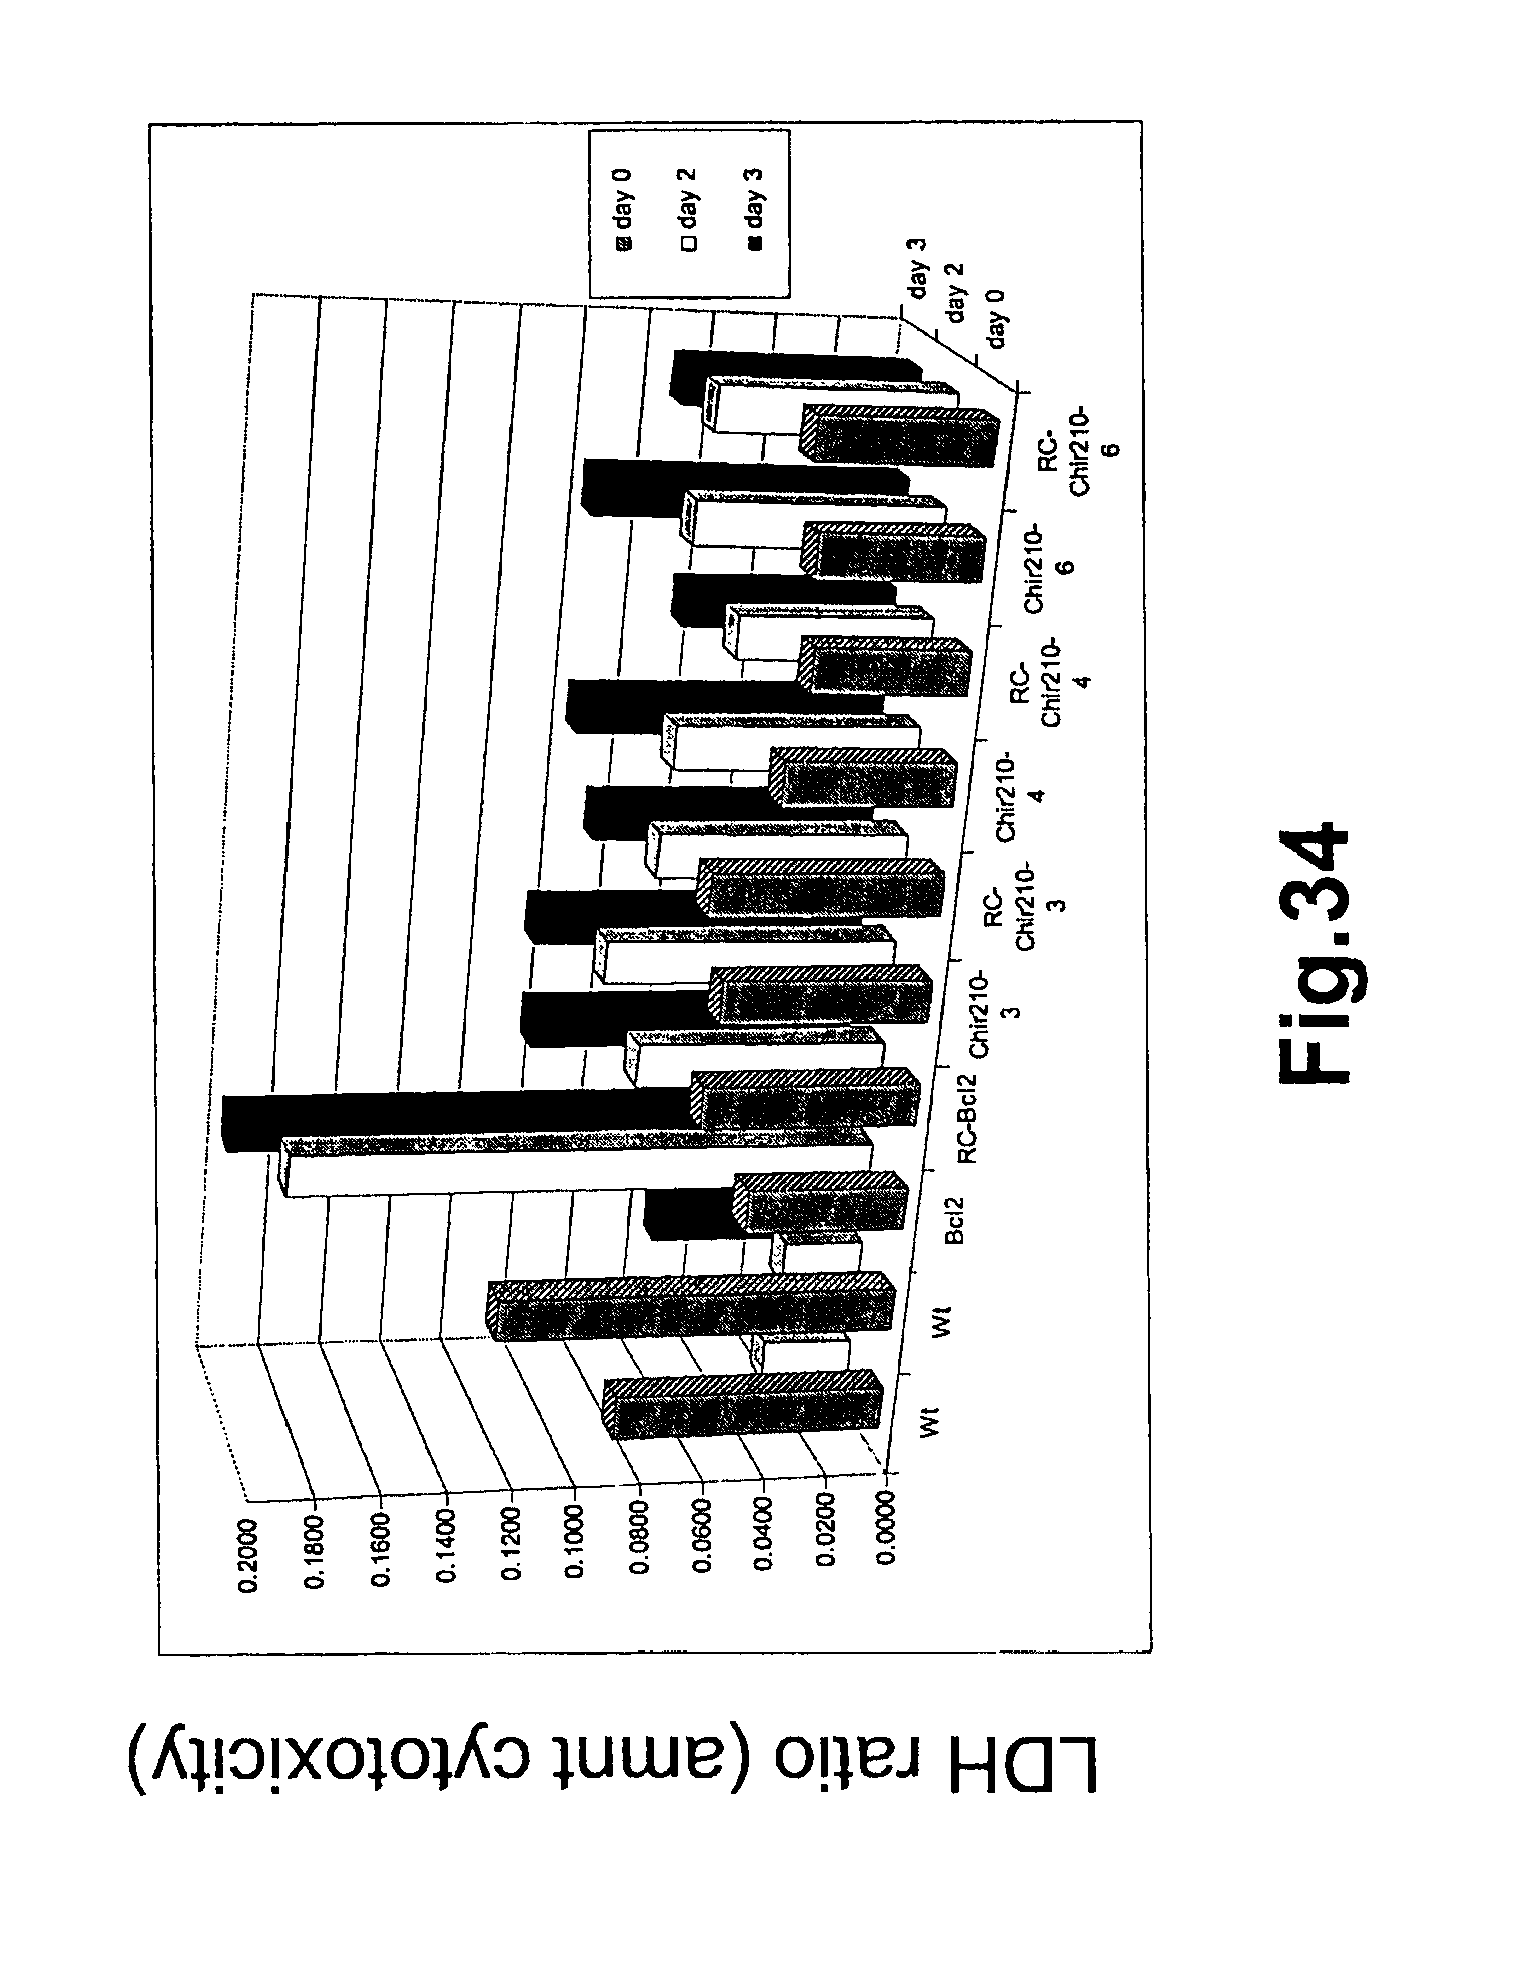 US8221983B2 Gene products differentially expressed in